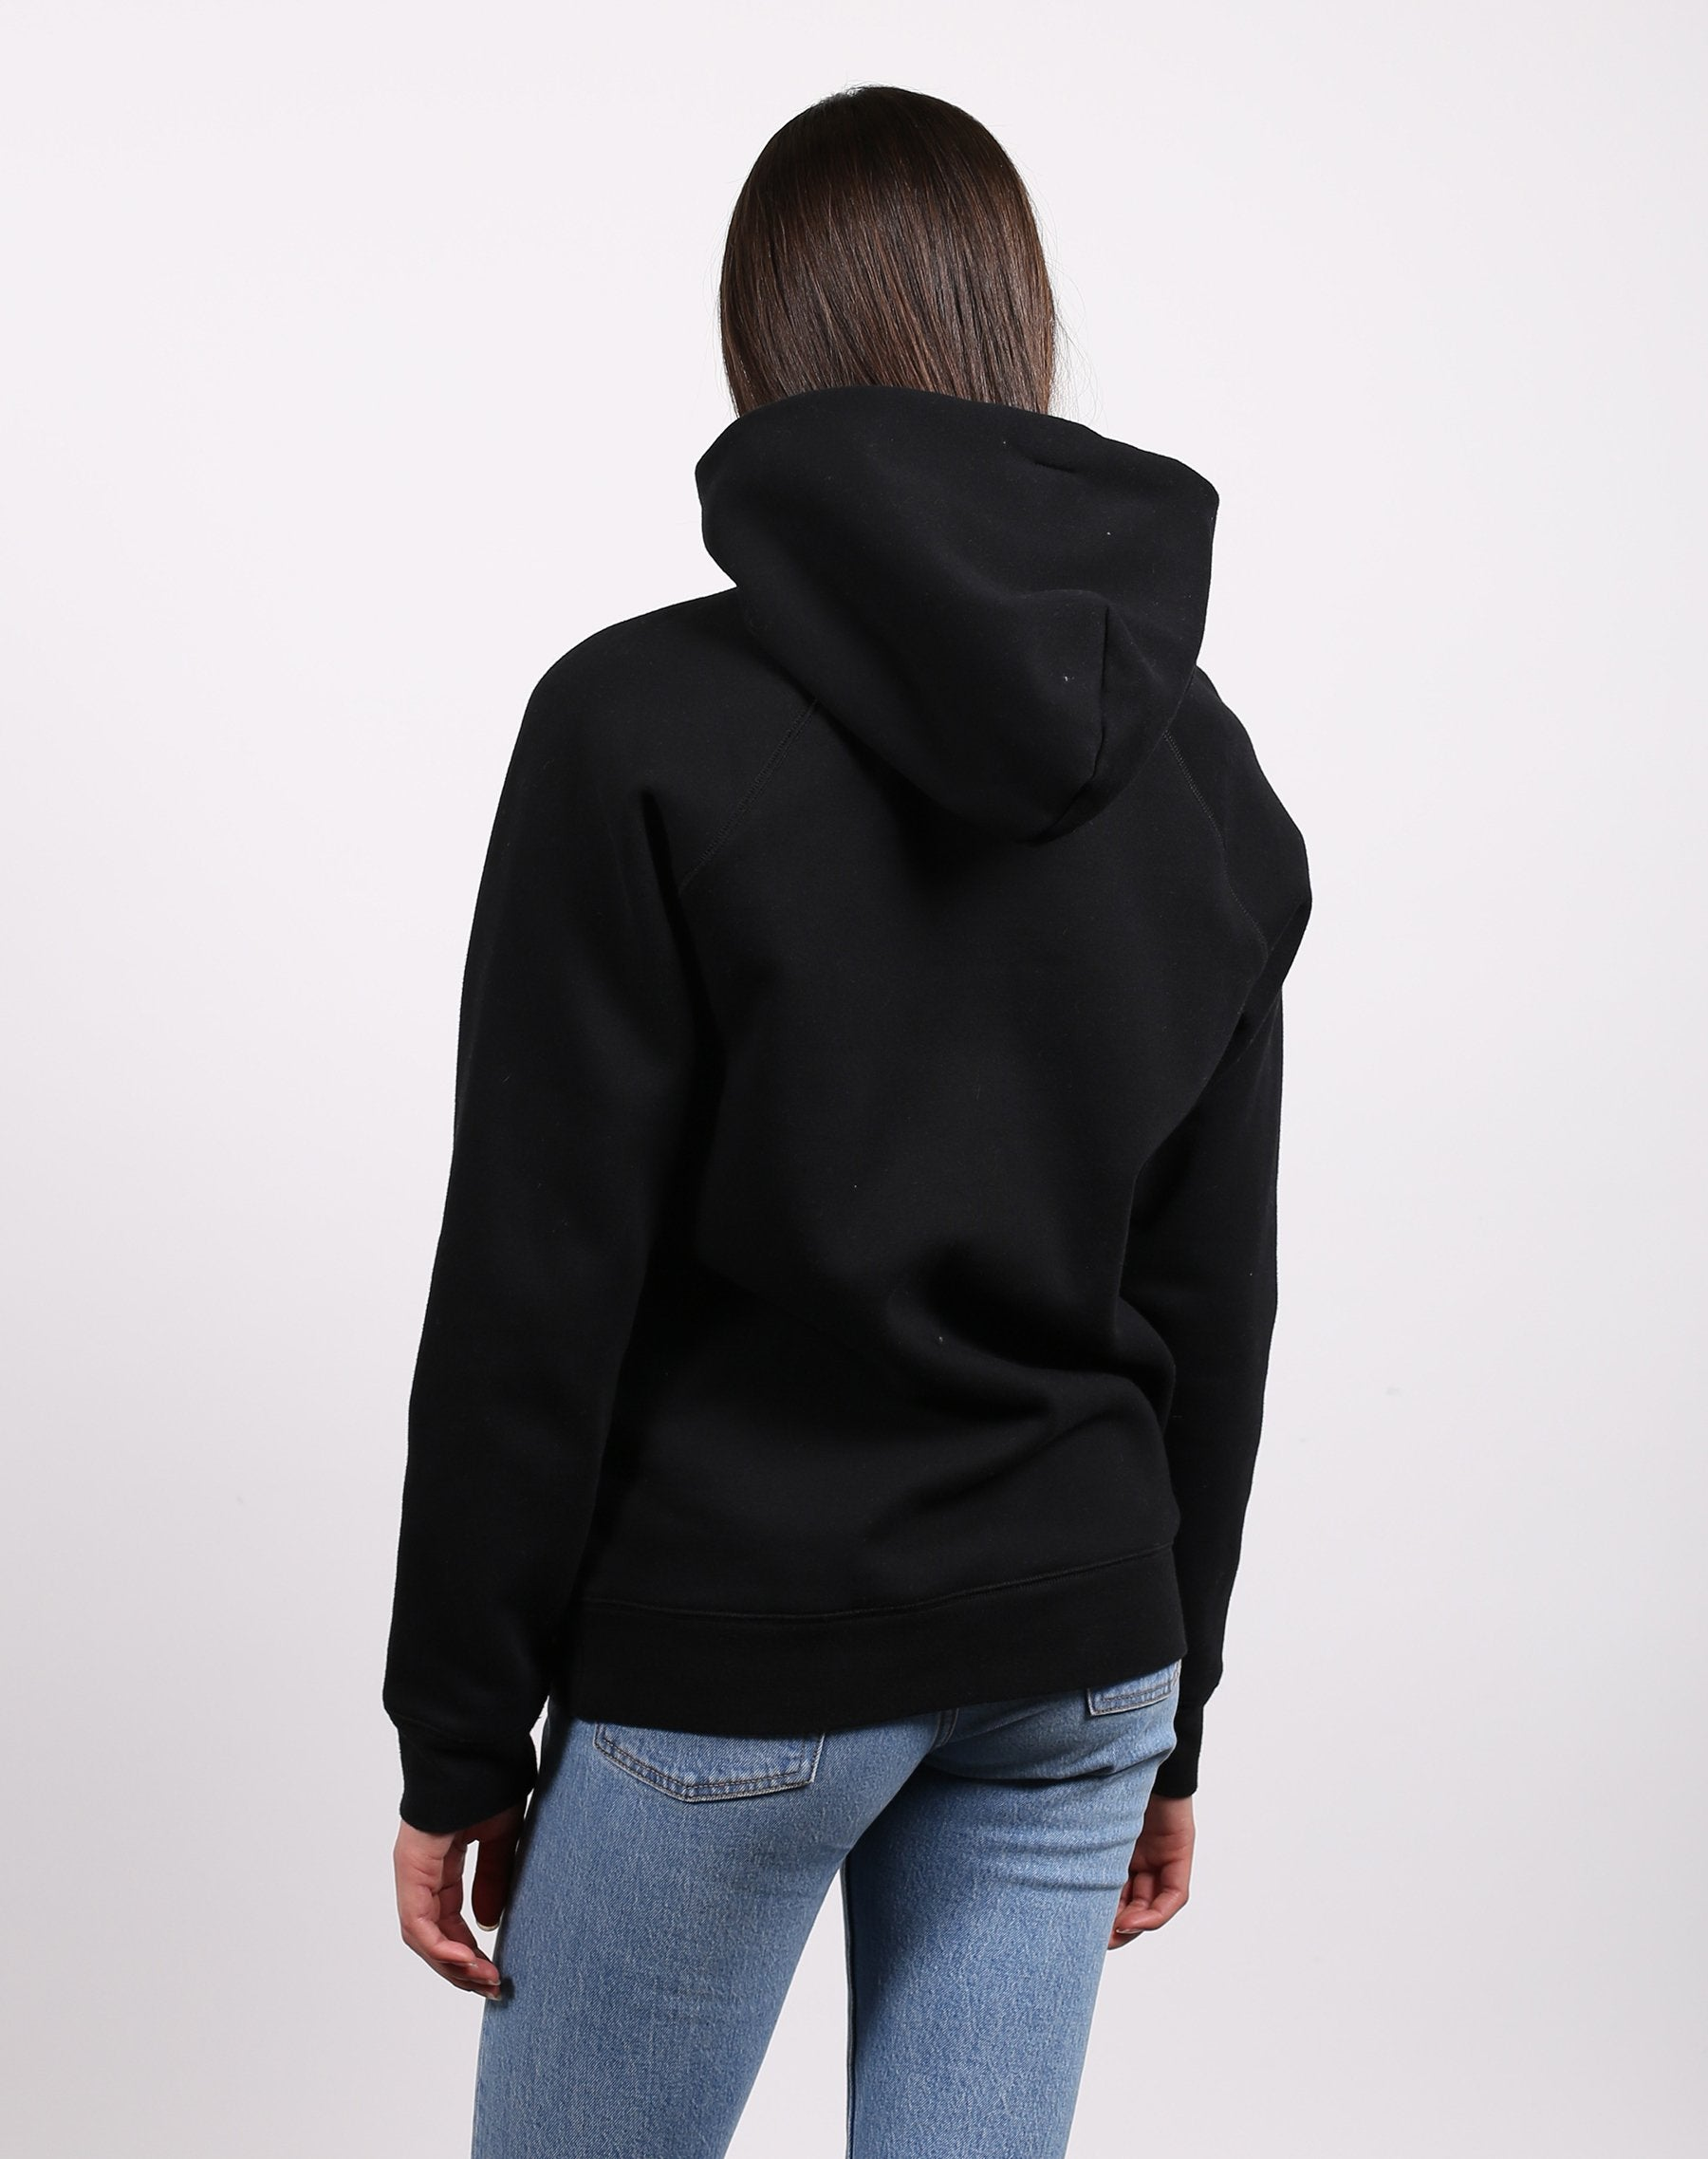 This is a photo of the back of the Blonde classic hoodie in black by Brunette the Label